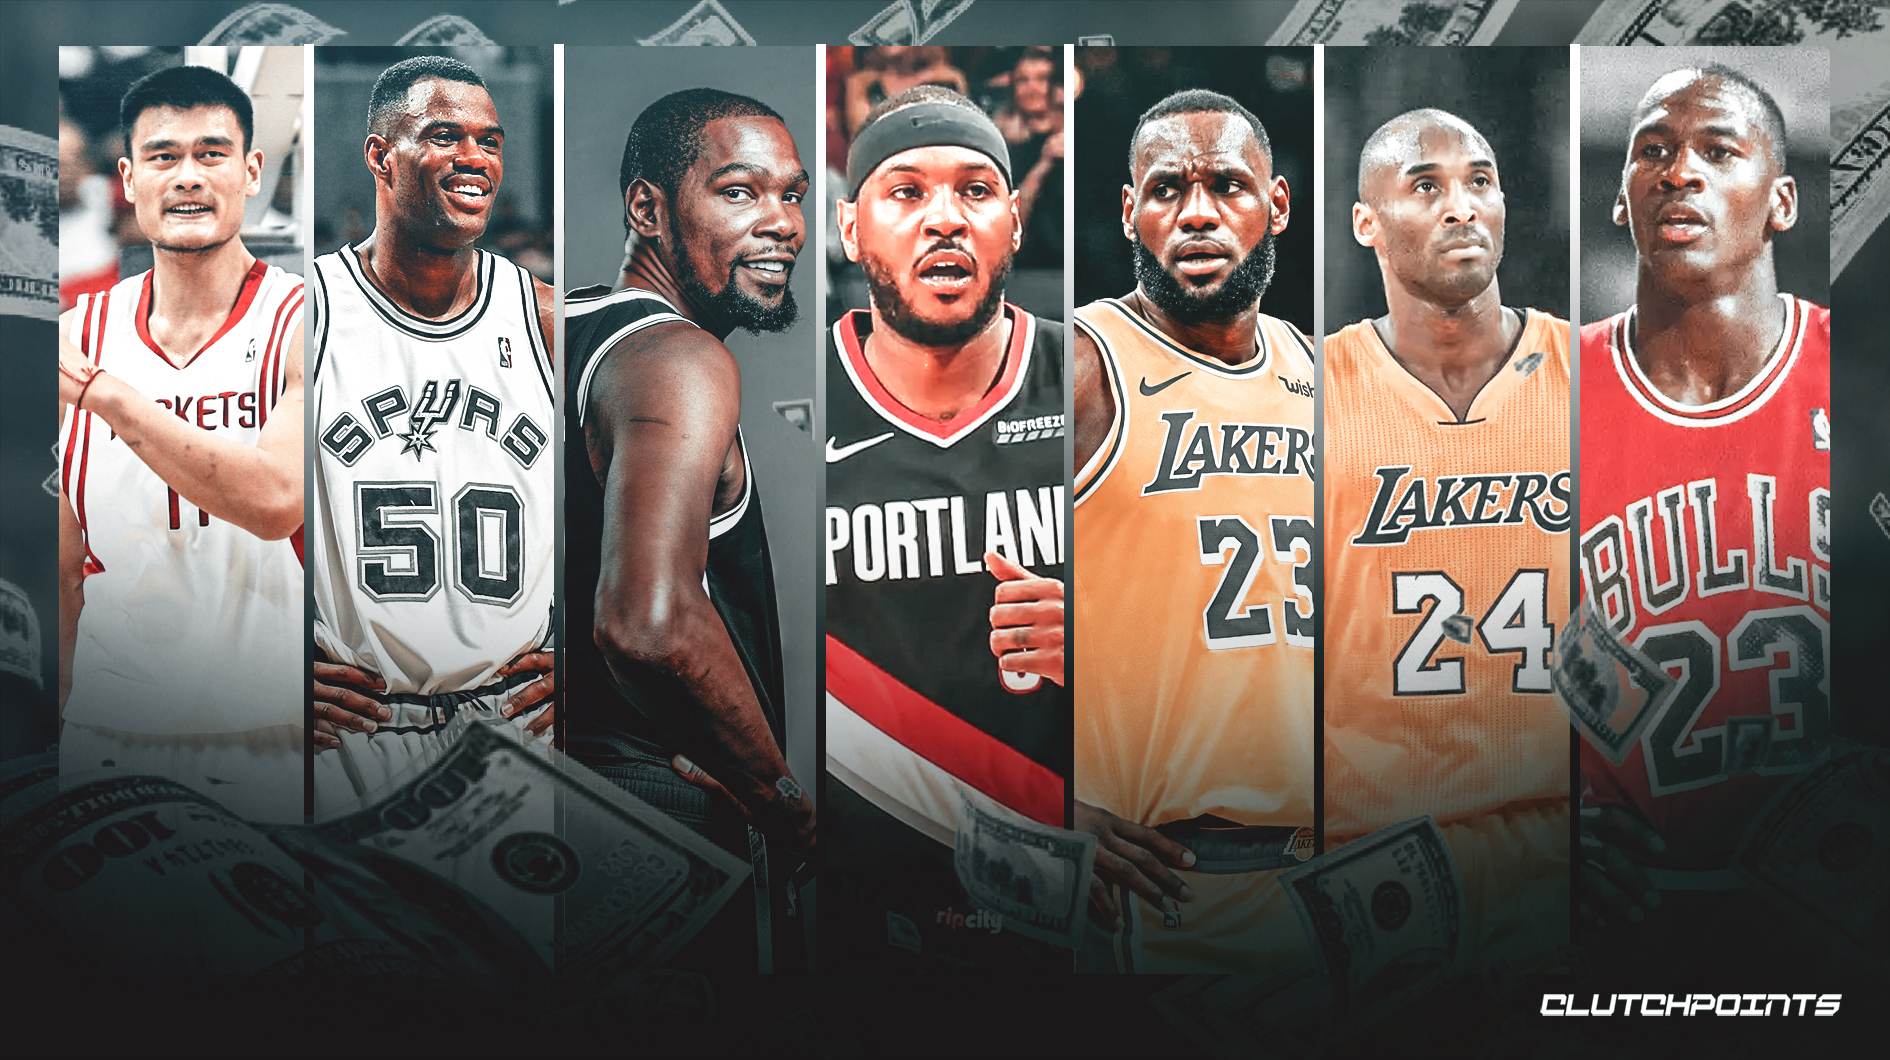 Taking a Look at the 20 Richest NBA Players in History, Richest NBA Players of all time, richest players